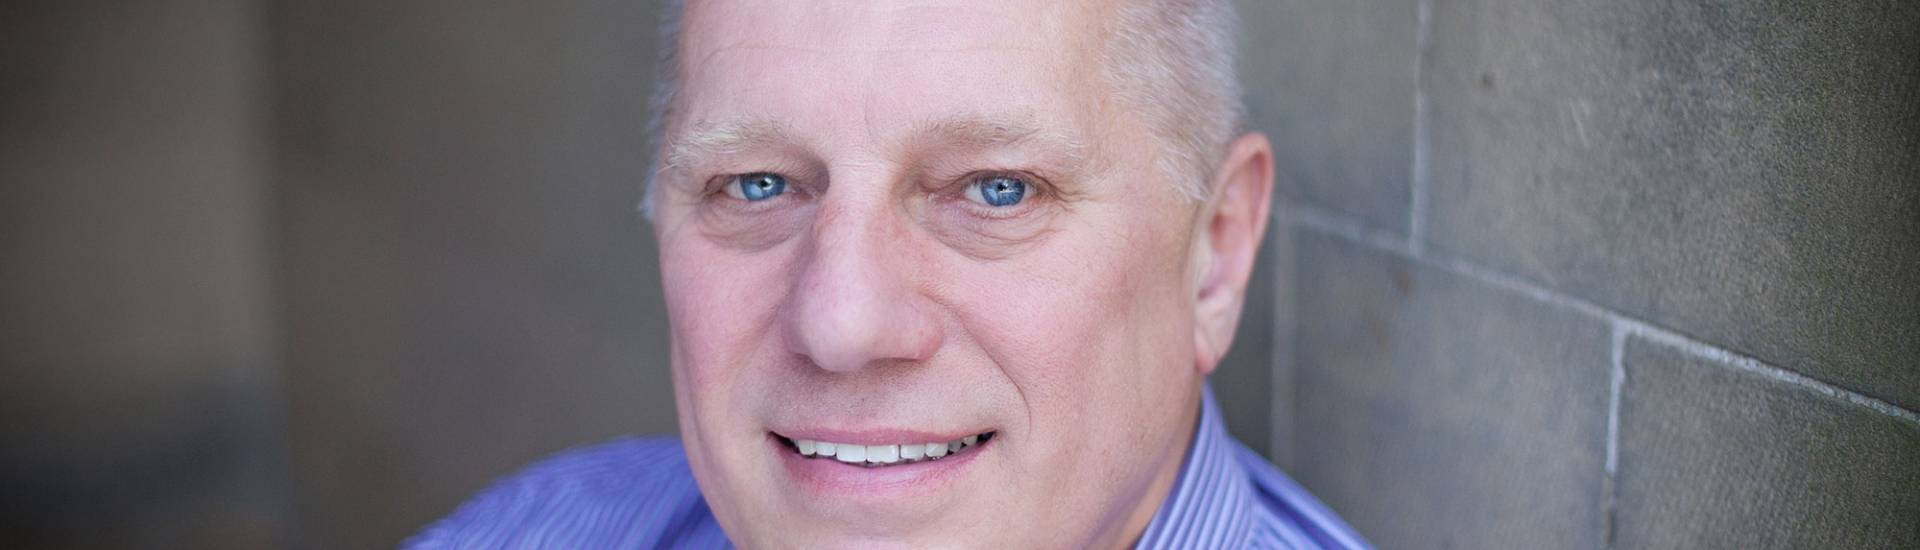 Dave Williams headshot